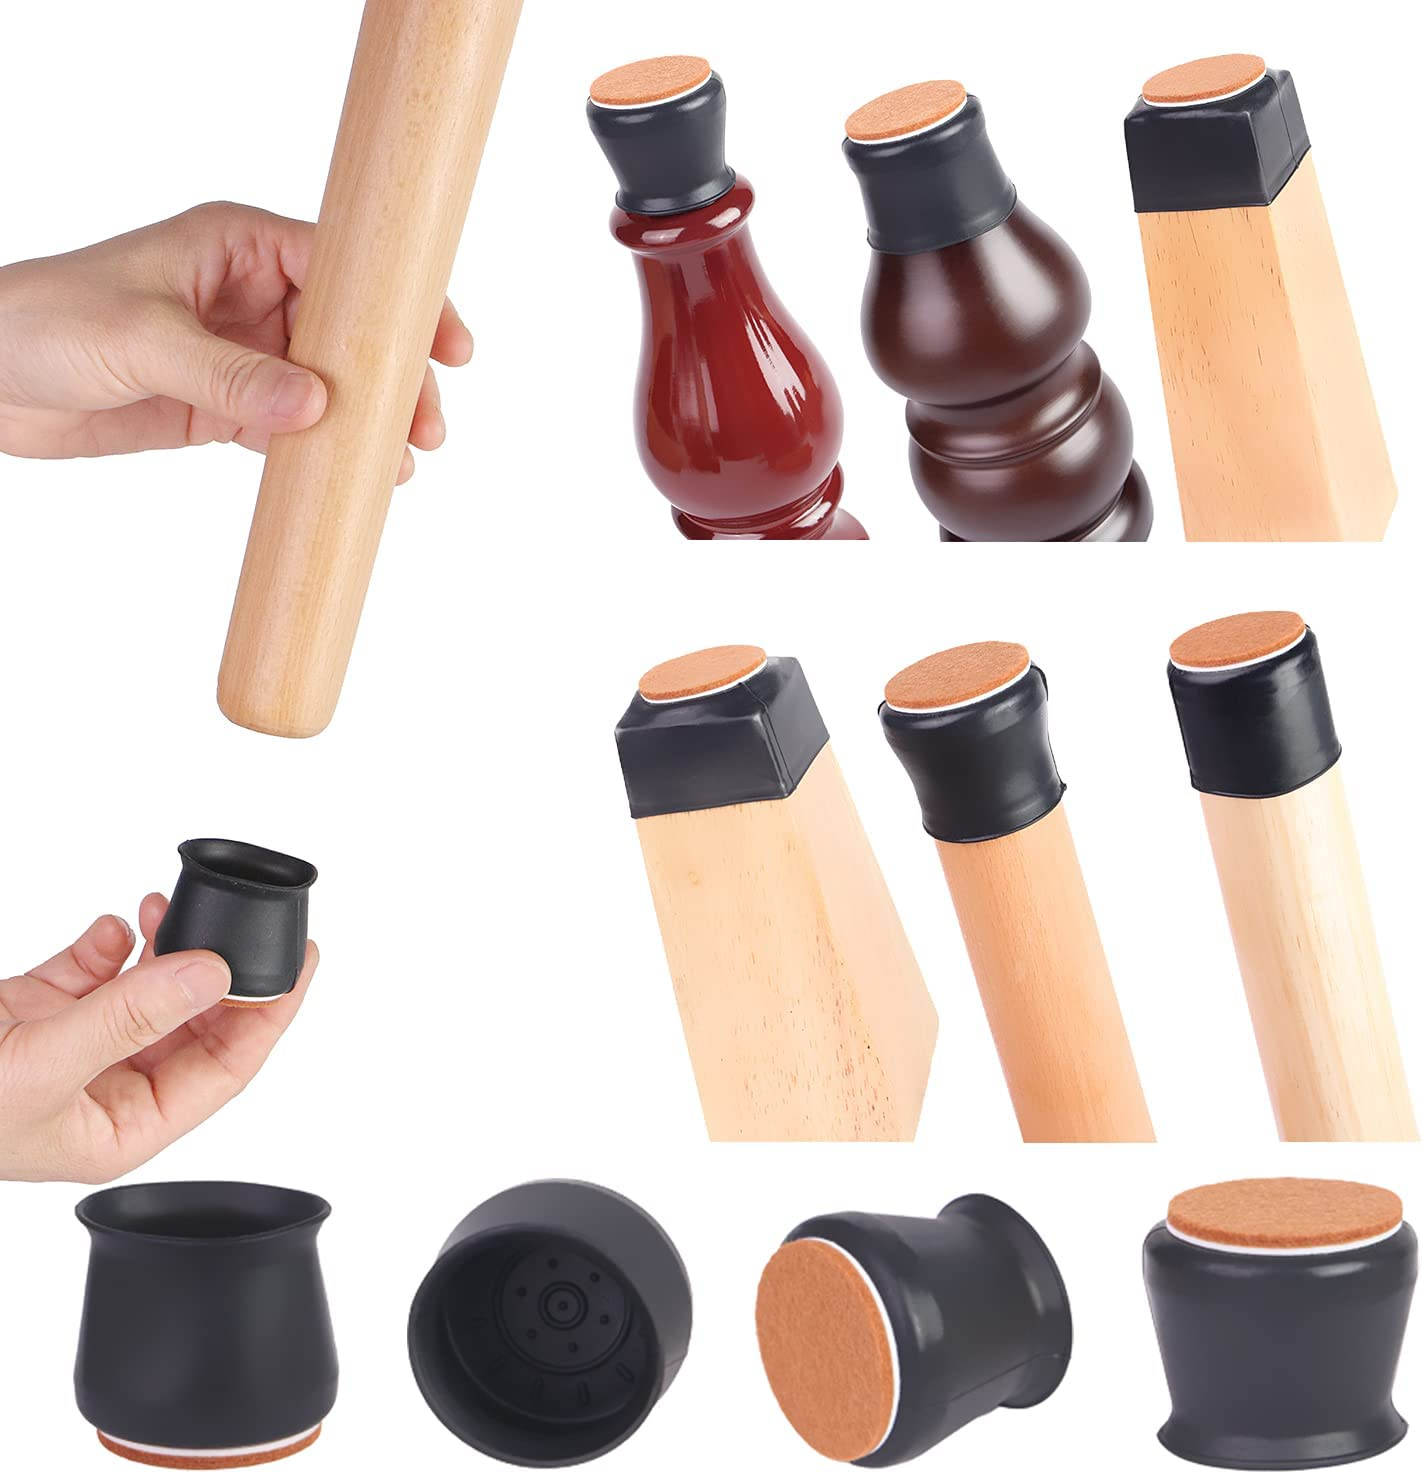 GYMOVE Chair Leg Protectors for Hardwood Floors with Felt,Silicone Furniture Legs Caps,Furniture Feet Protection Cover Anti Stratch/Slide Easily and Silently 16 Pcs (Fit: 1.18